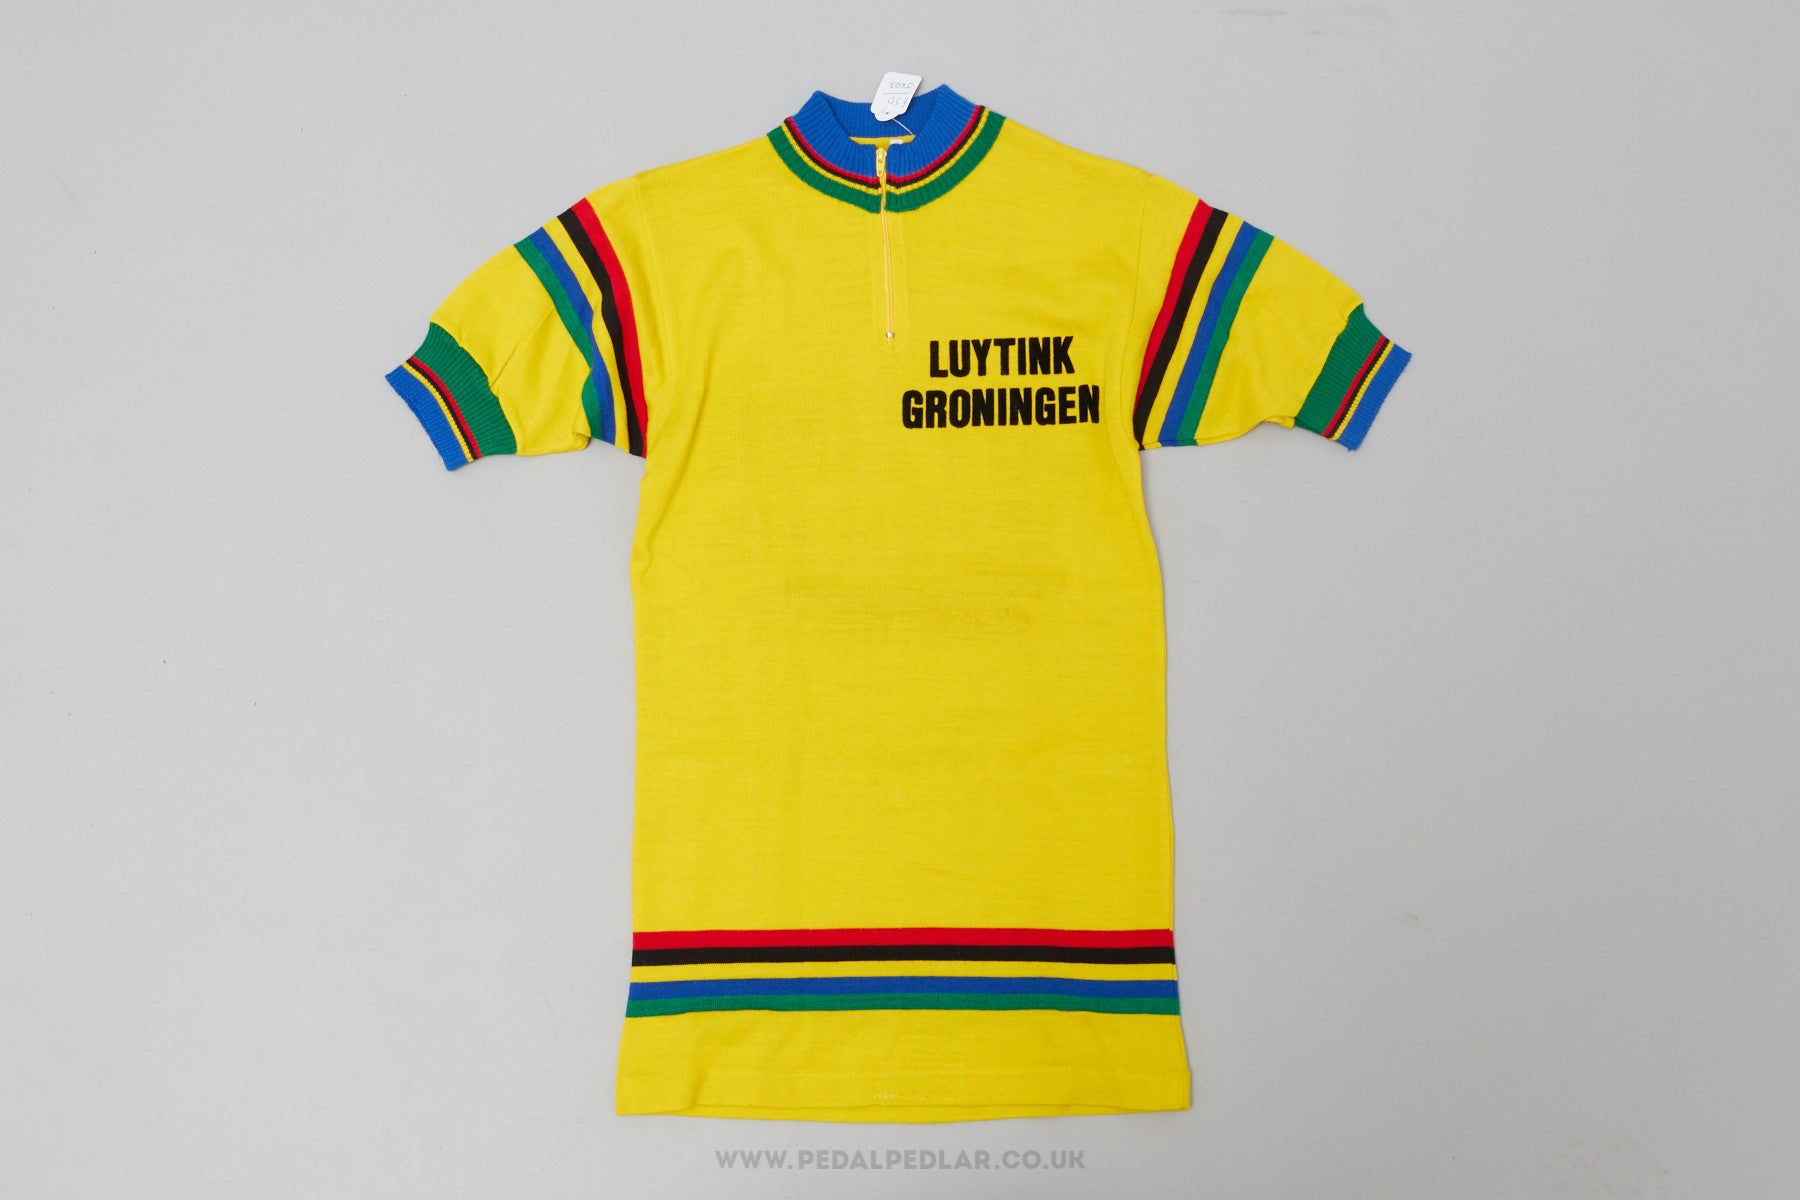 Luytink Groningen Vintage Woollen Style Cycling Jersey Pedal Pedlar 1 f0c20418a